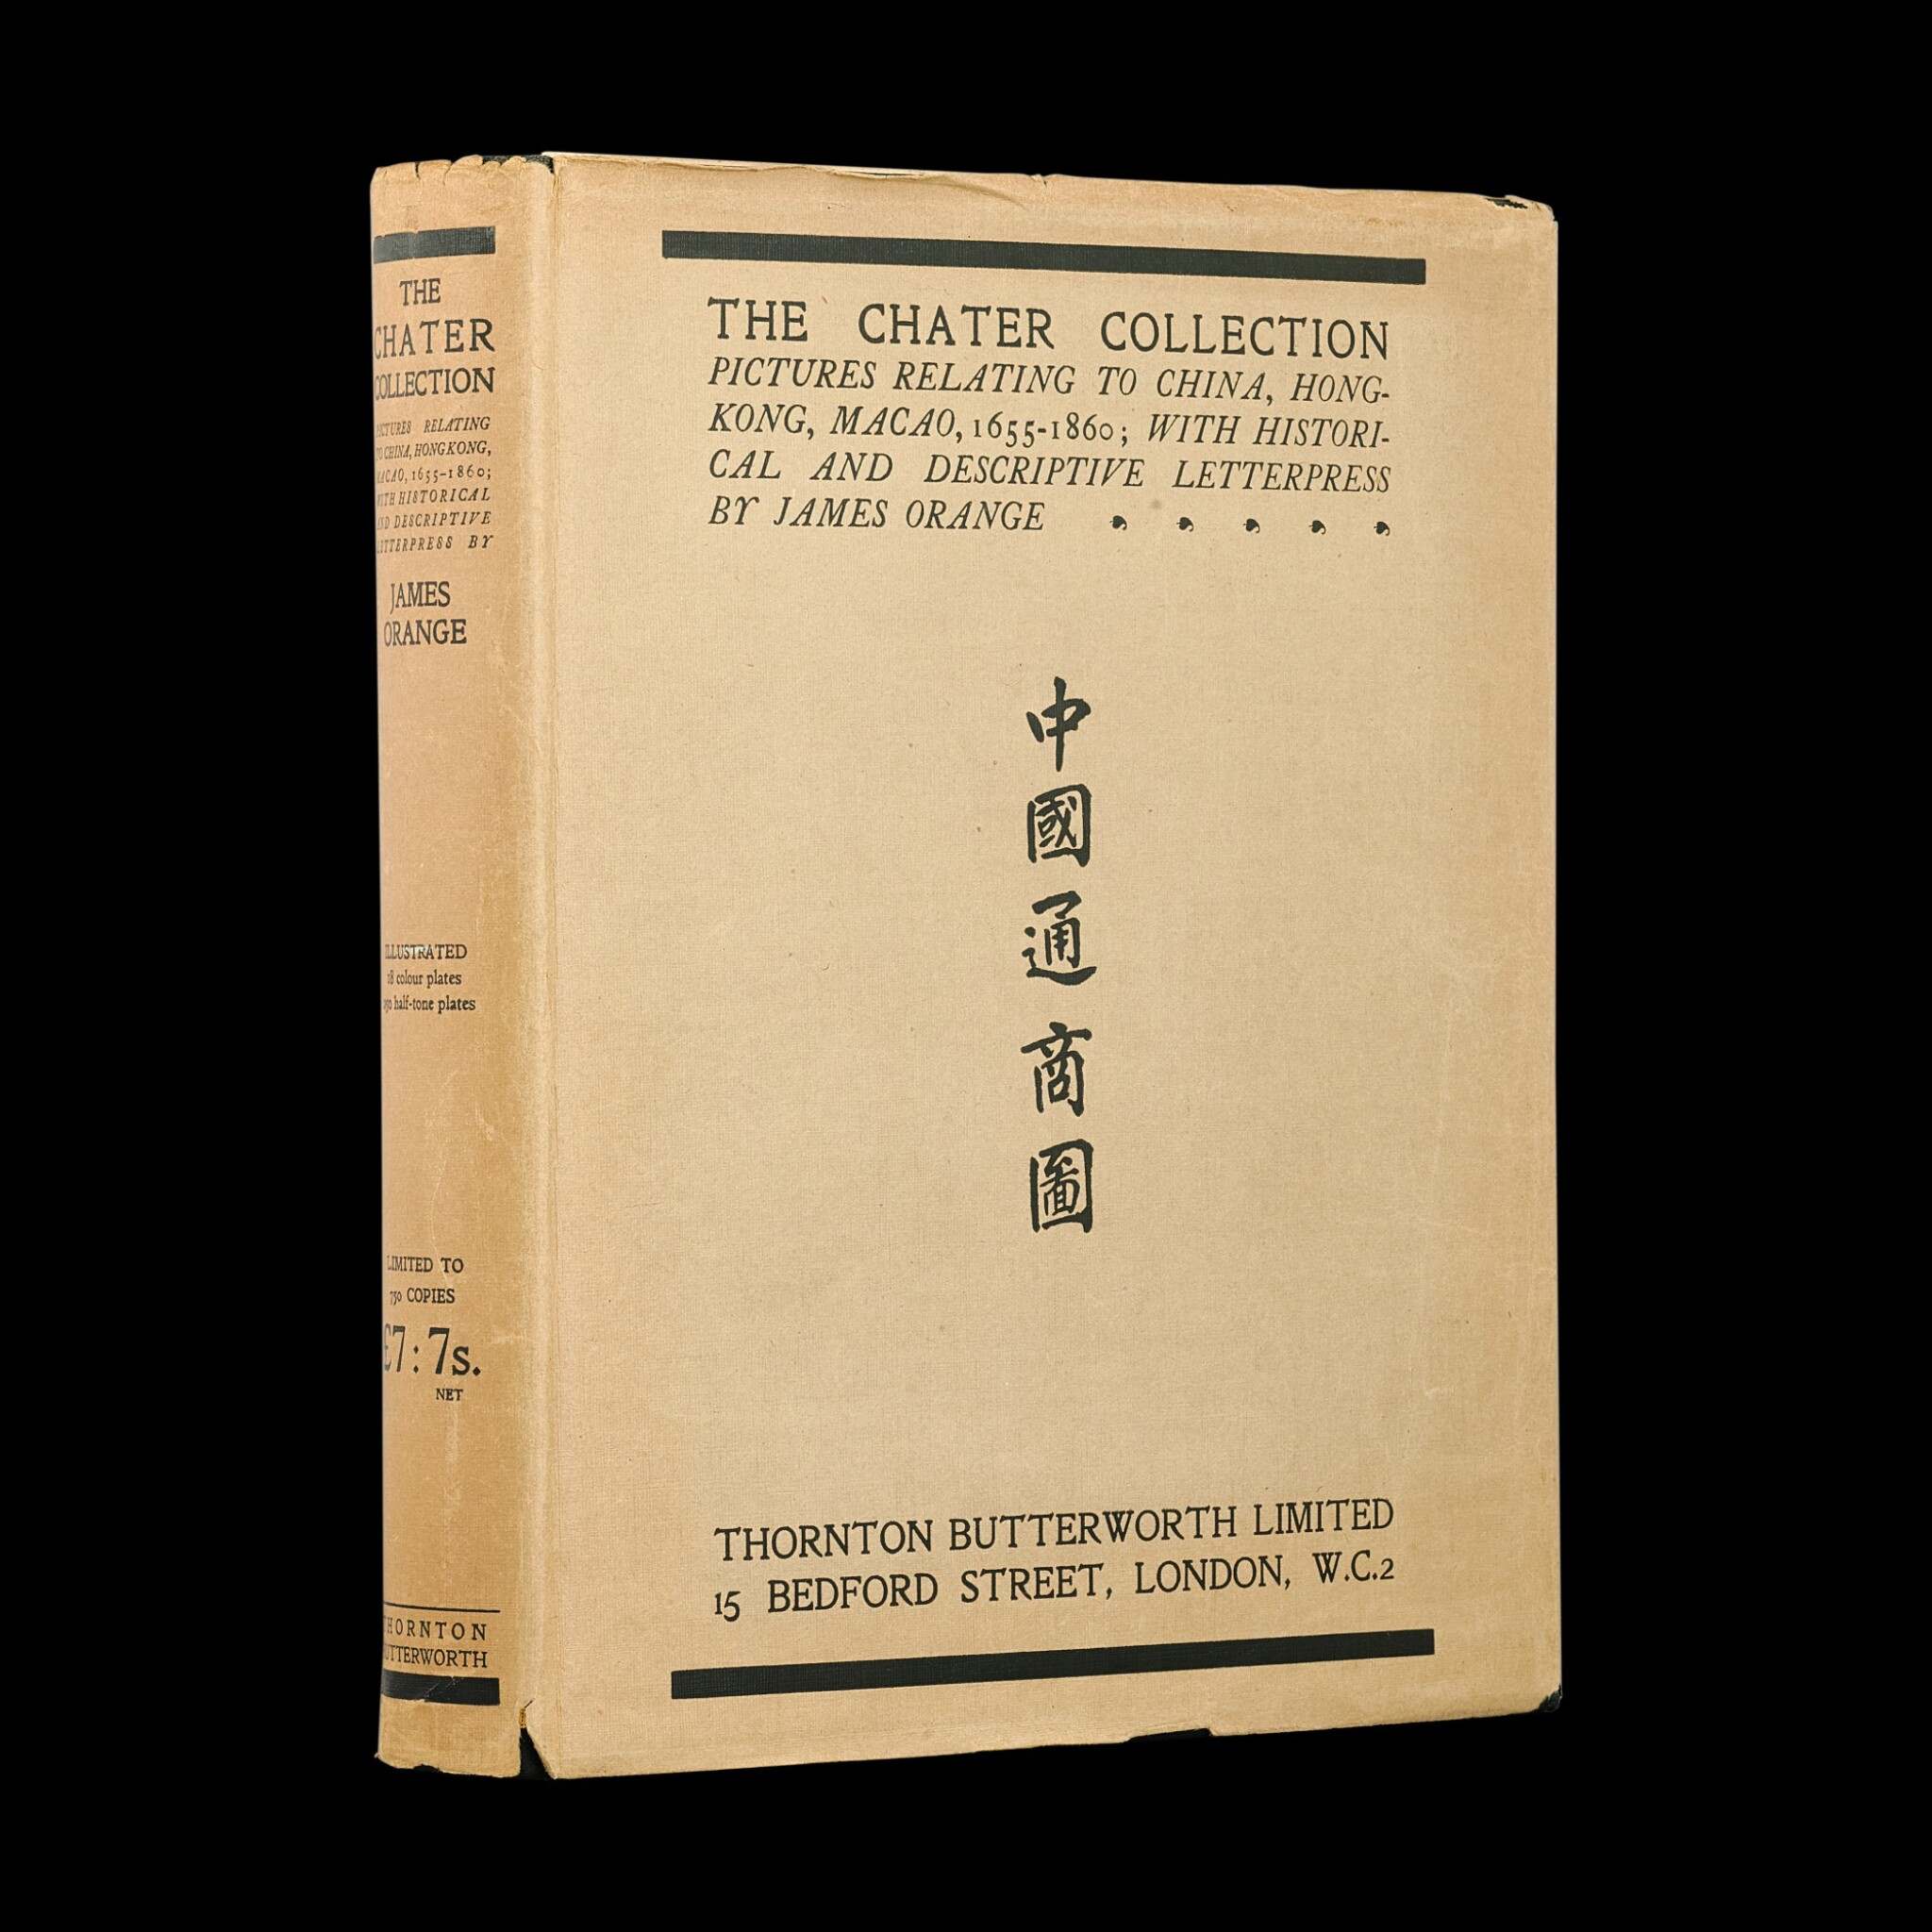 View full screen - View 1 of Lot 198. James Orange, The Chater Collection: Pictures relating to China, Hongkong, Macao, 1655-1860, with Historical and Descriptive Letterpress by James Orange, London, 1924.   詹姆士.奧朗奇,《遮打爵士藏中國通商圖:十七至十九世紀西方人眼中的中國、香港、澳門》,倫敦,1924年,限量初版.